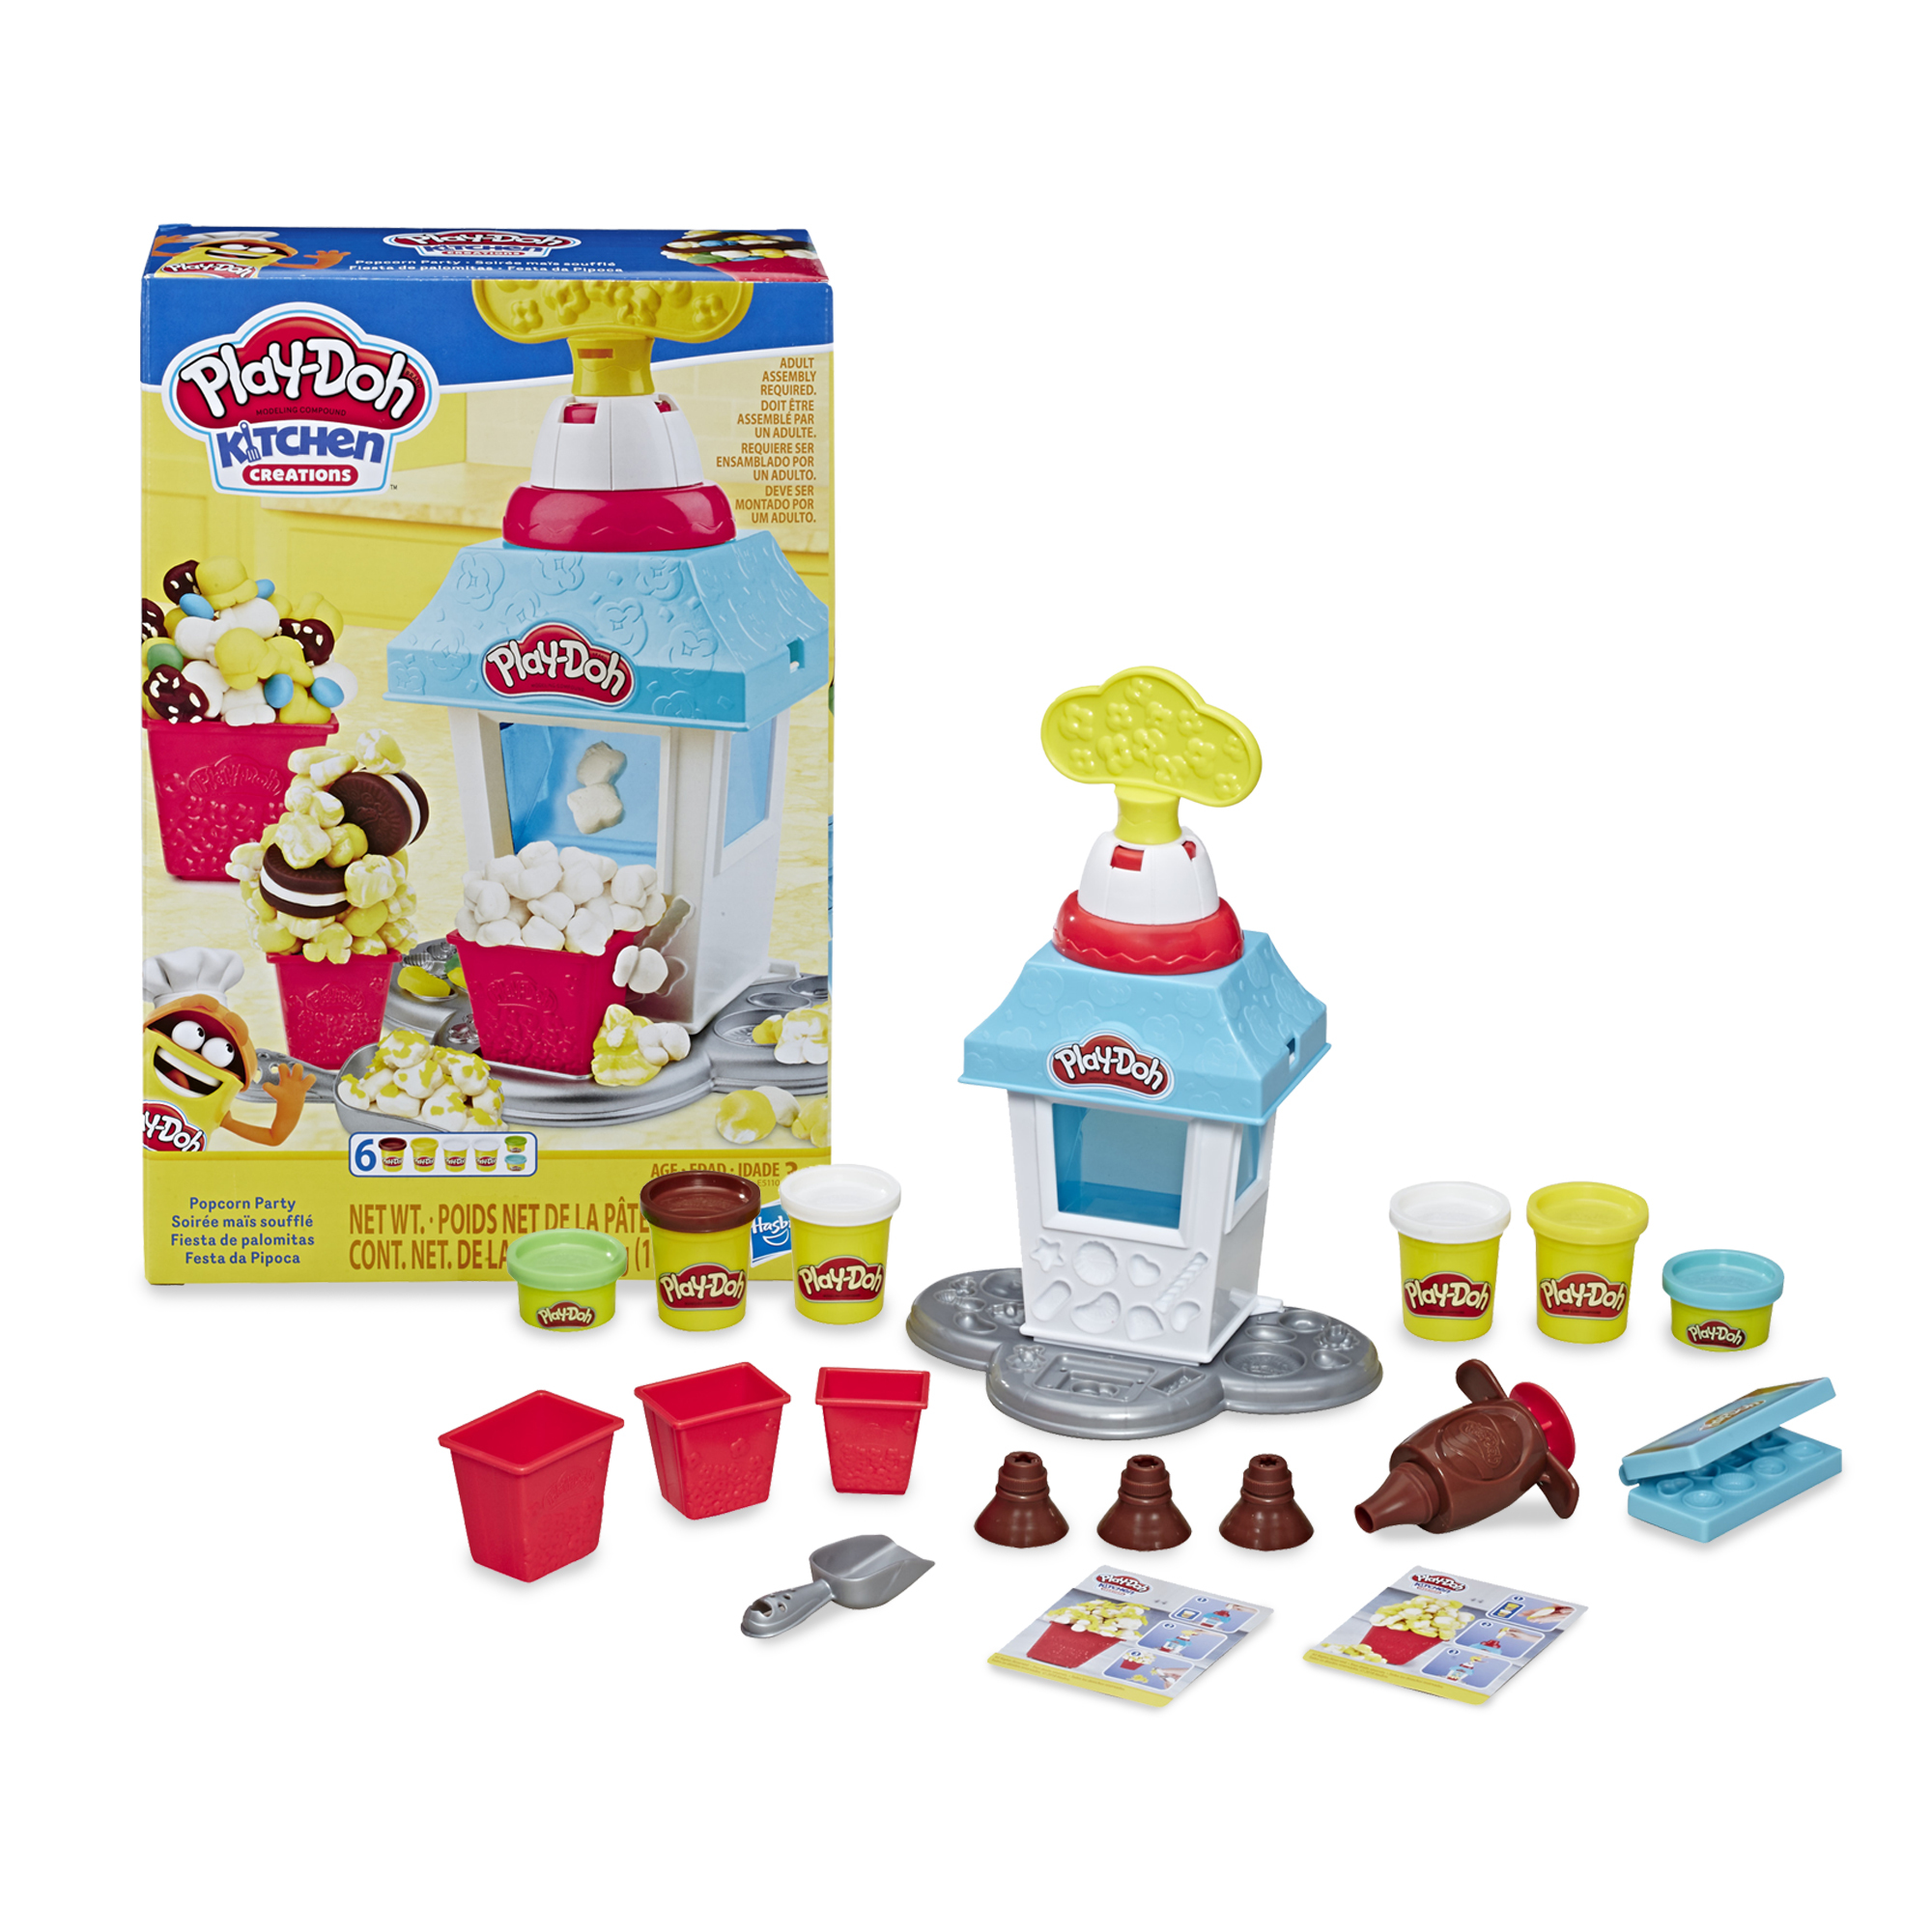 Play-Doh Kitchen Creations Popcorn Party Play Food Set .jpg